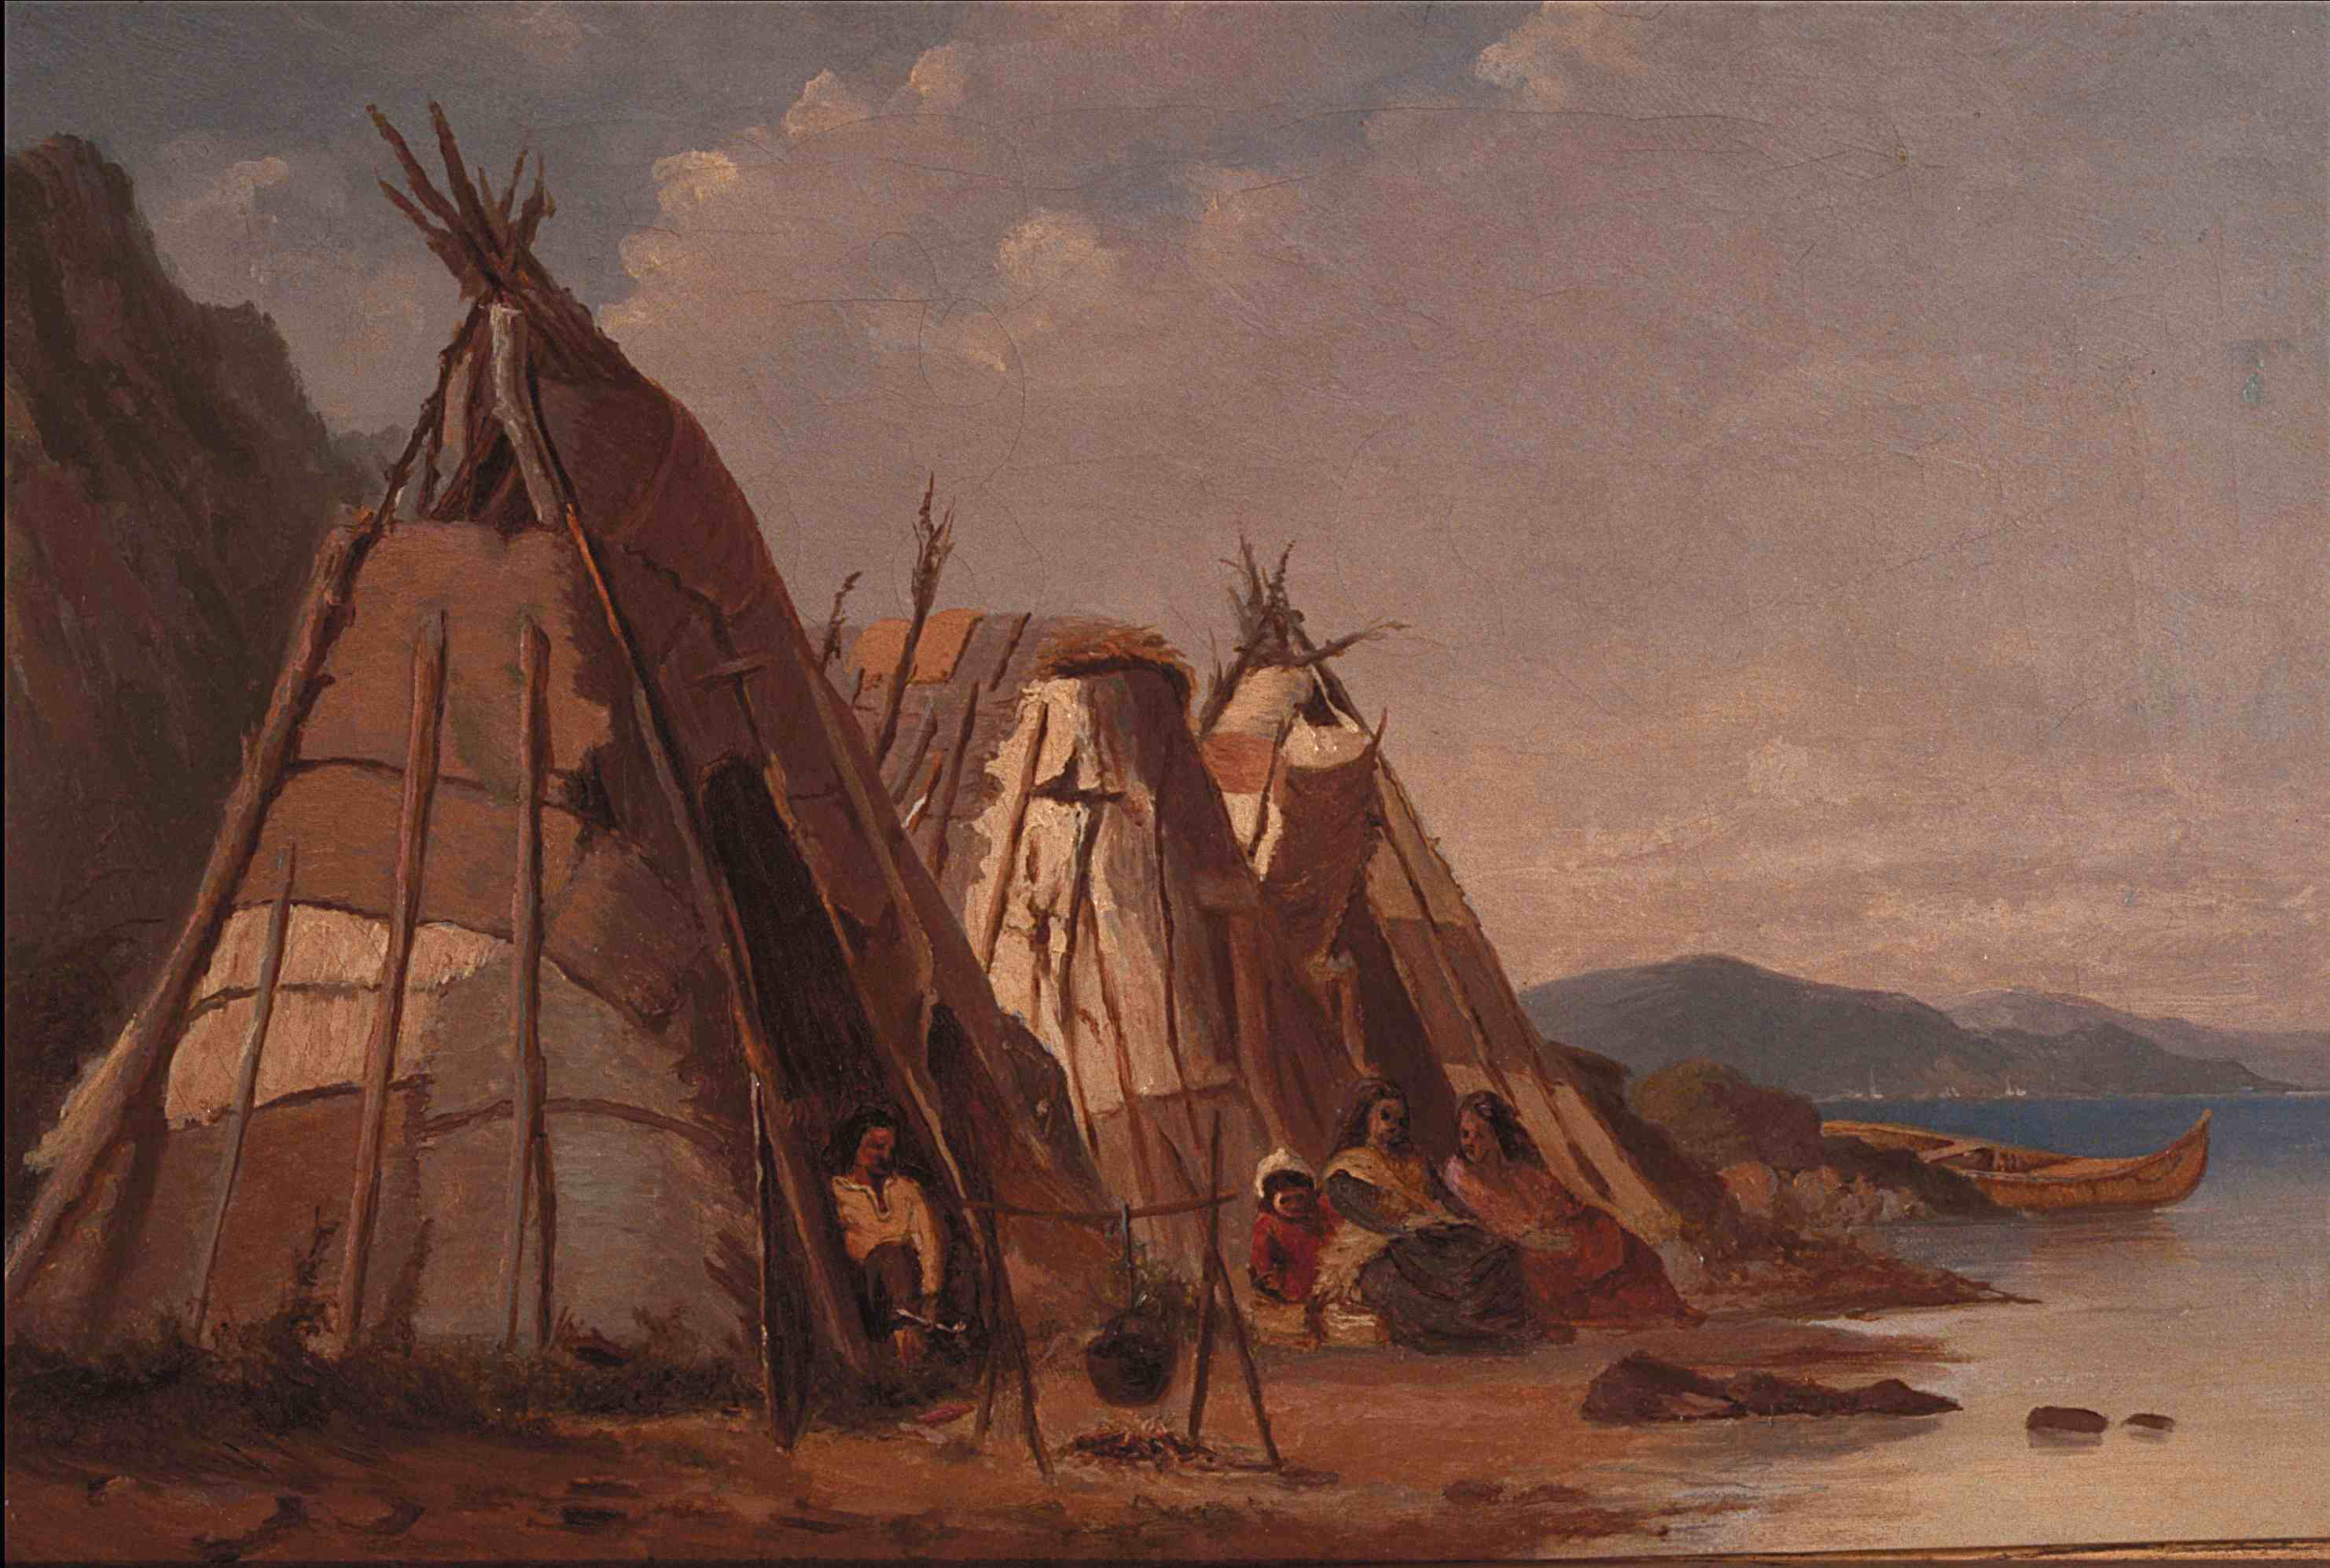 Painting of Aboriginal families in front of wigwams on a beach.